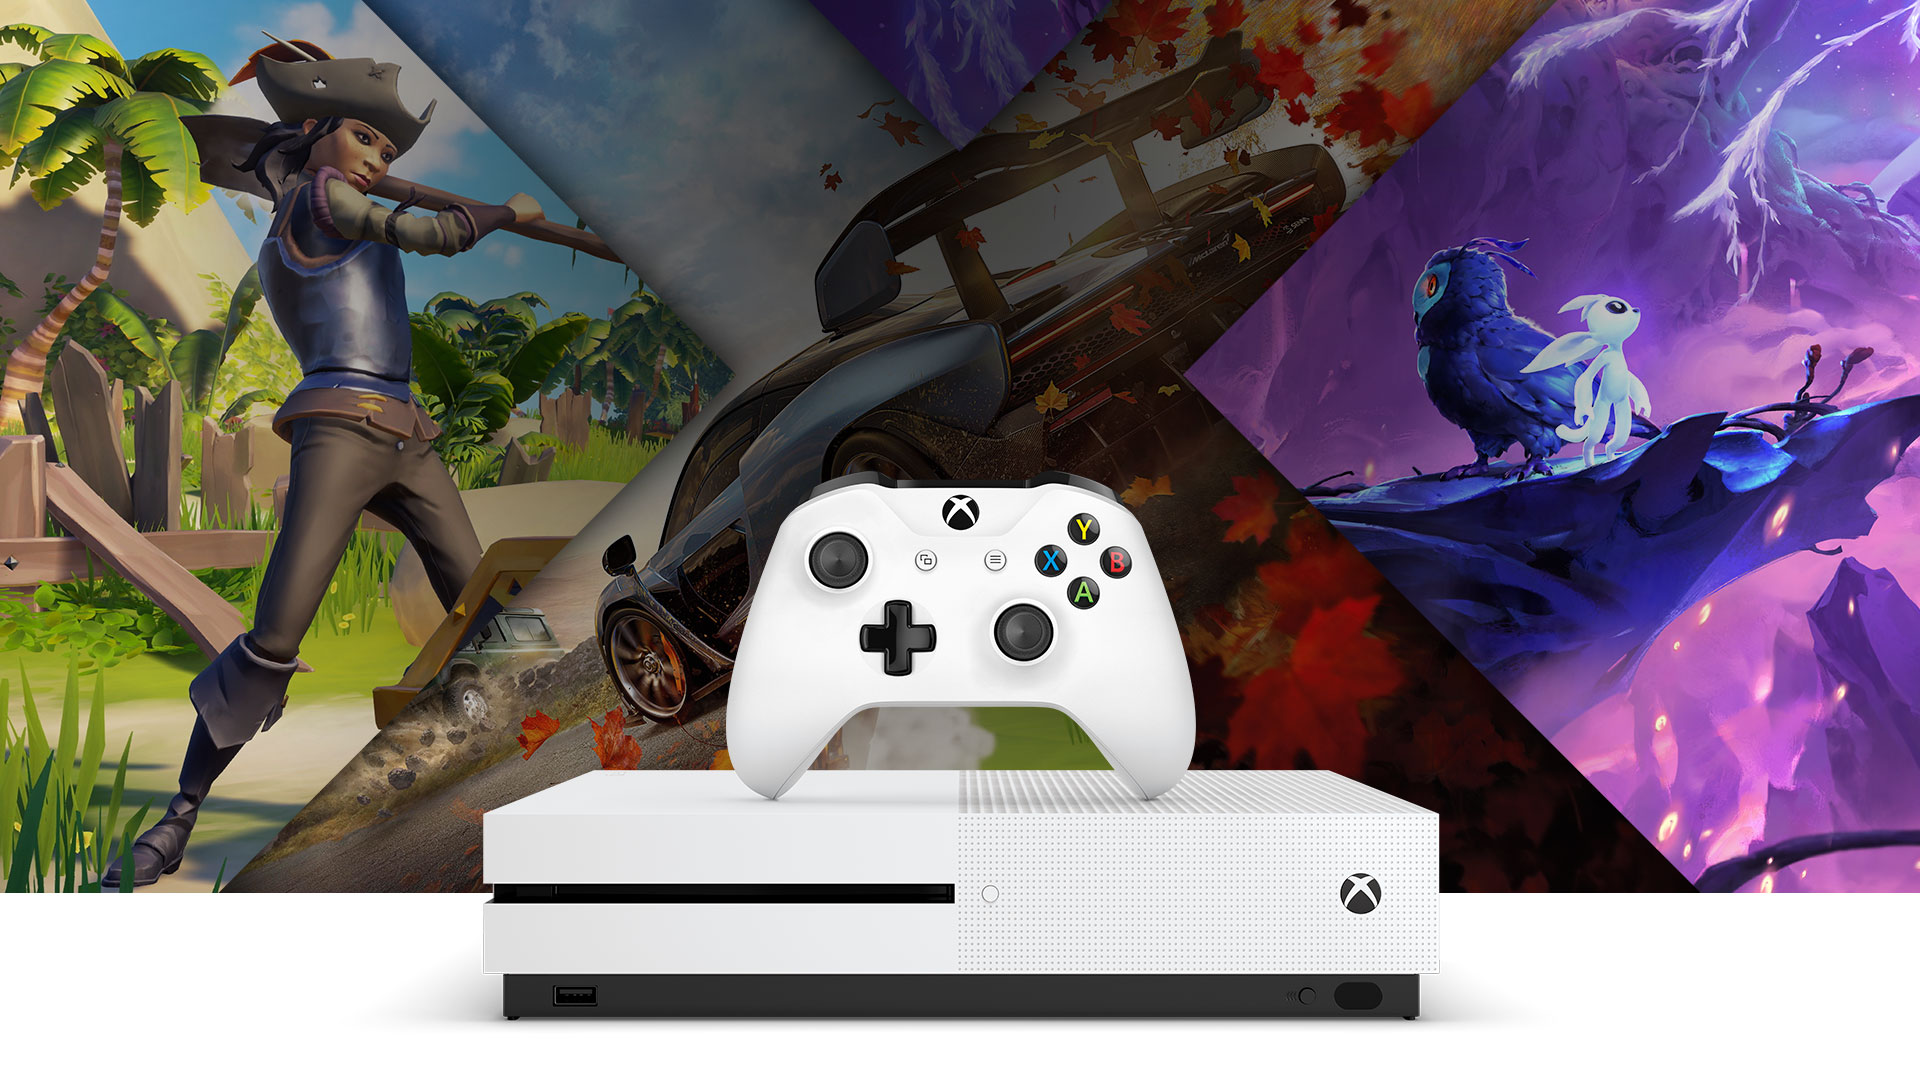 Widok z przodu konsoli Xbox One S z białym kontrolerem bezprzewodowym otoczonej grafikami z gier Sea of Thieves, Forza Horizon 4, Ori i Will of Wisps